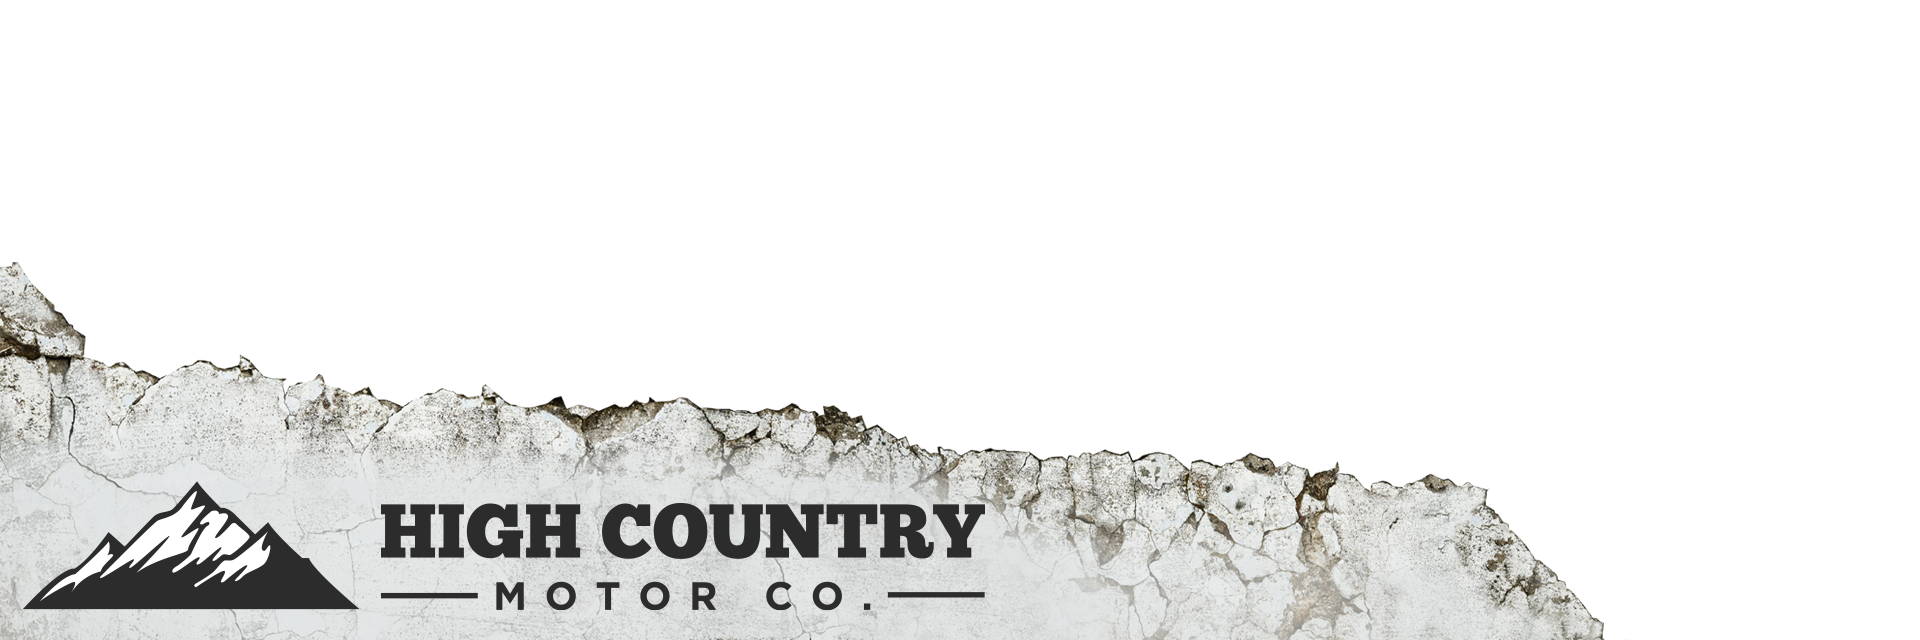 High Country Motor Co